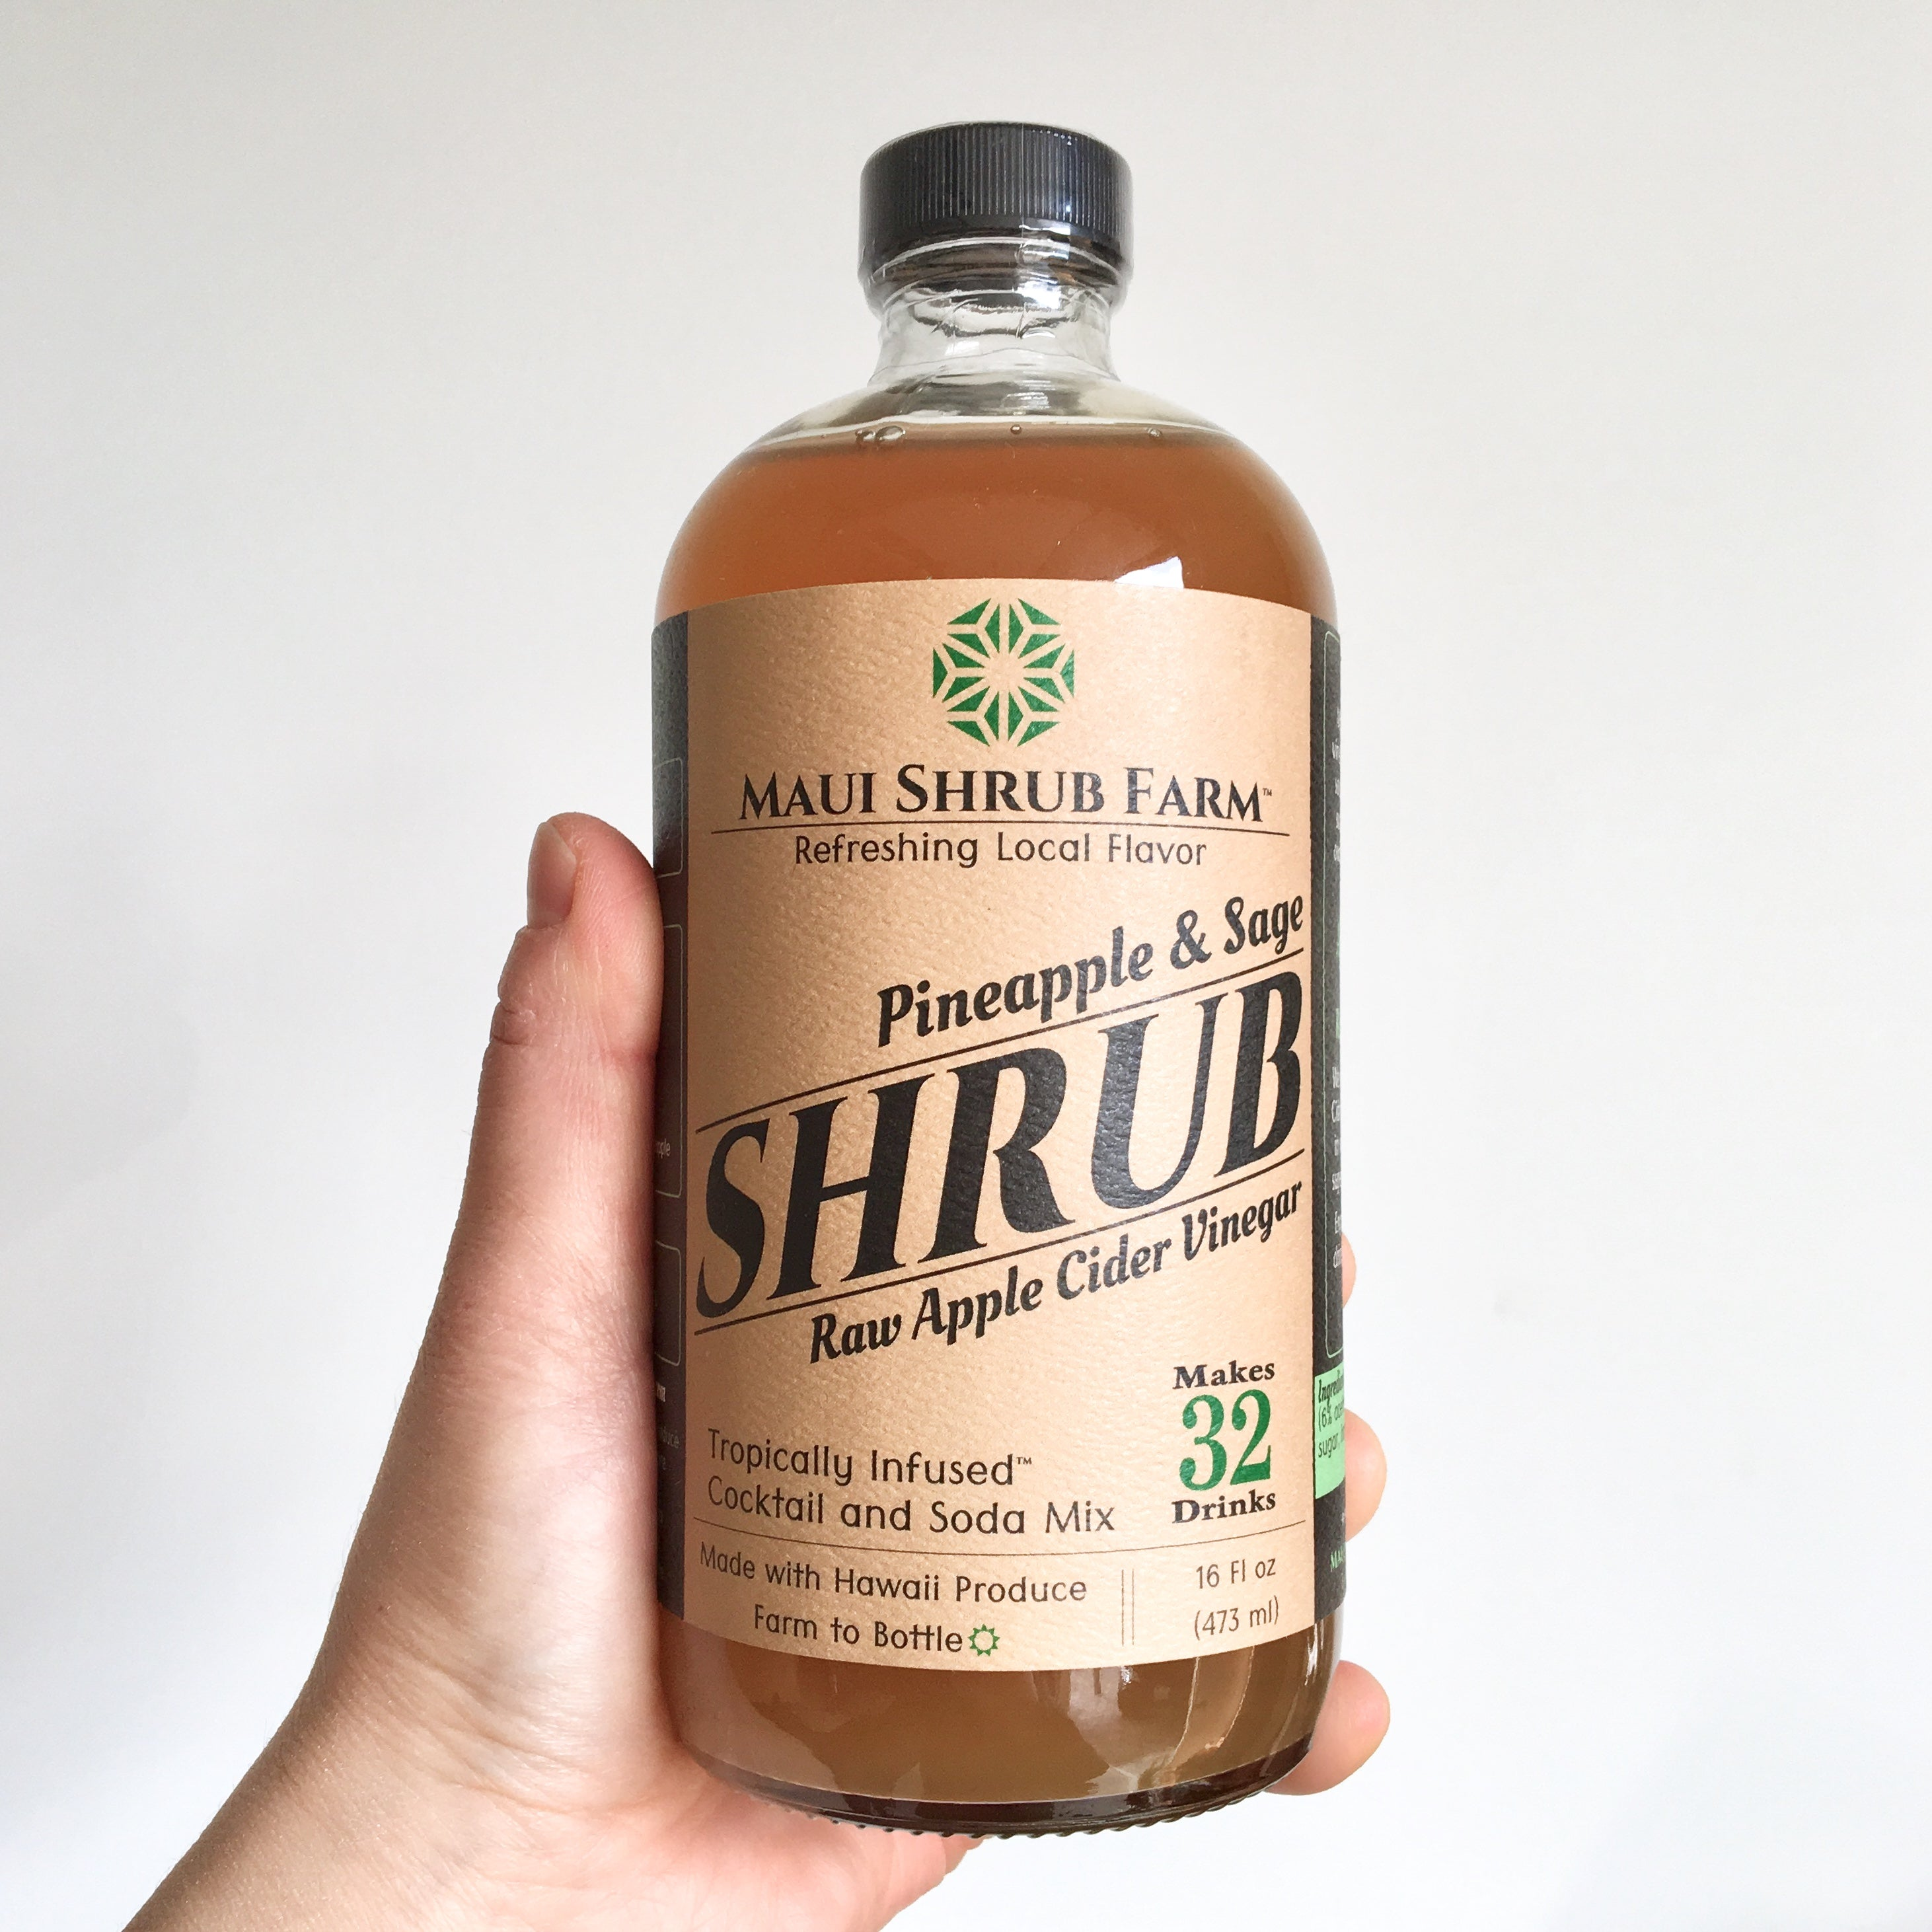 Shrub Farm RAW Apple Cider Vinegars | 7 Flavors